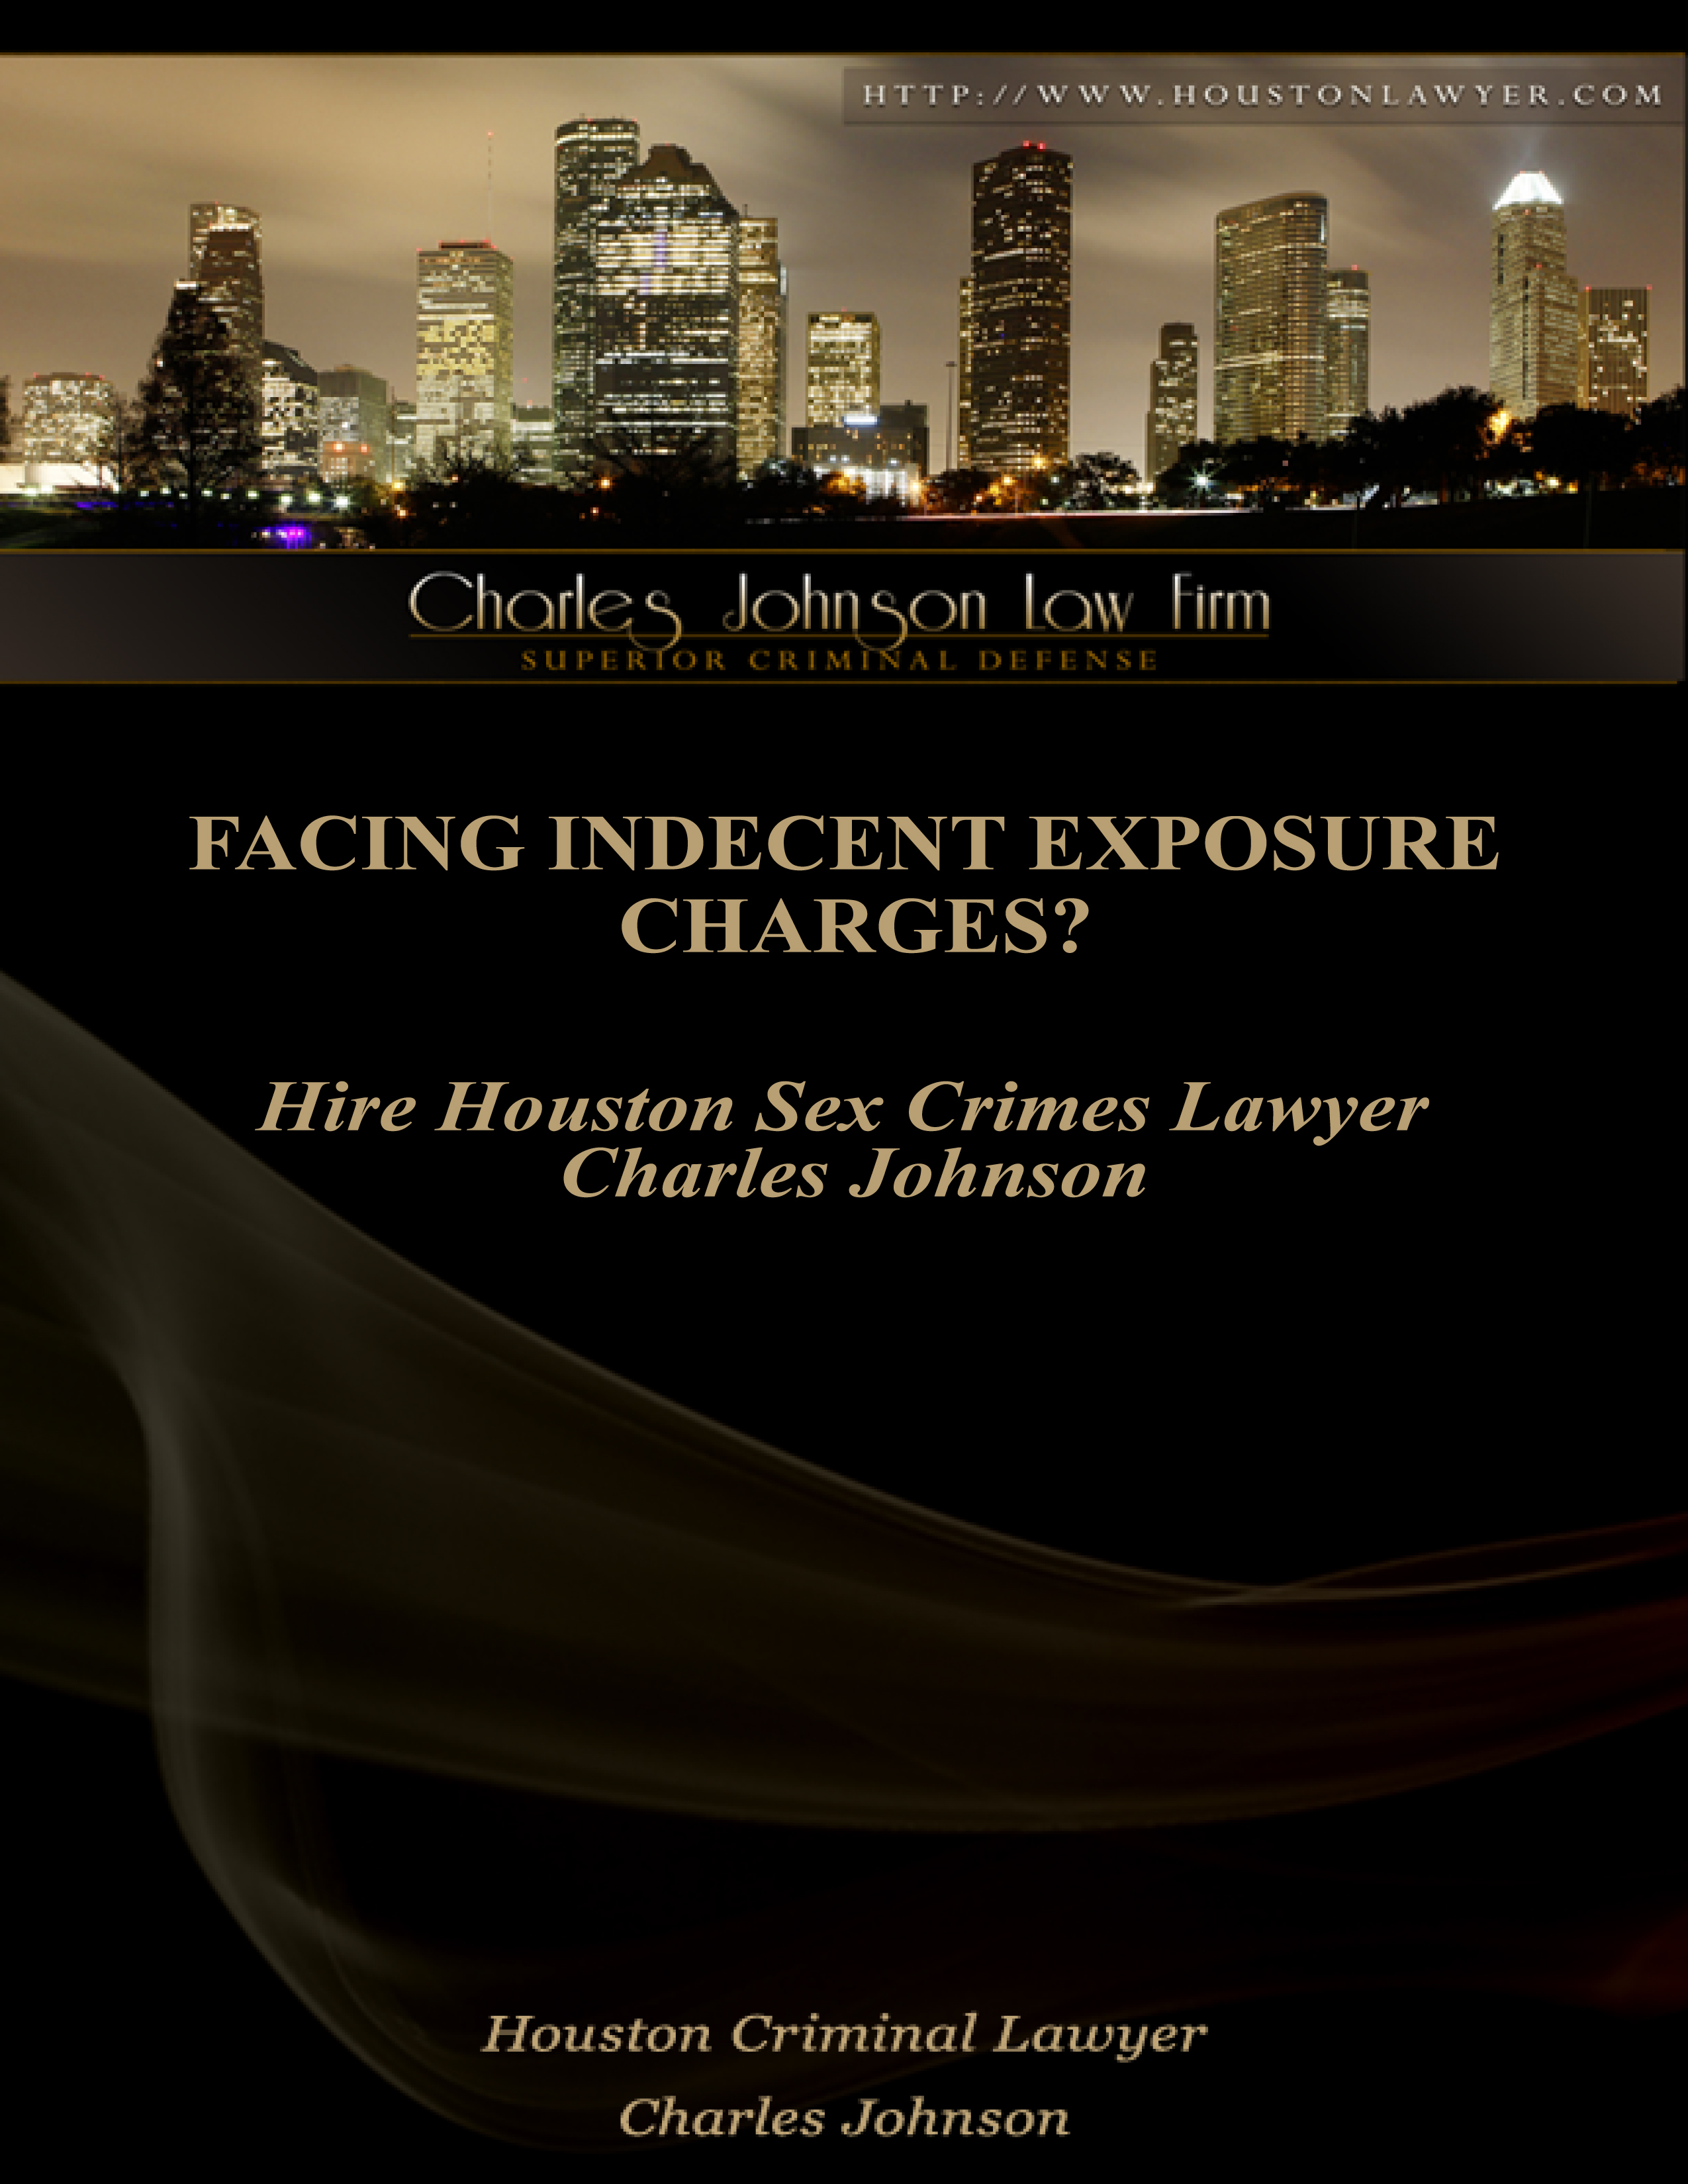 Facing Indecent Exposure Charges? Hire Houston Sex Crimes Lawyer Charles Johnson